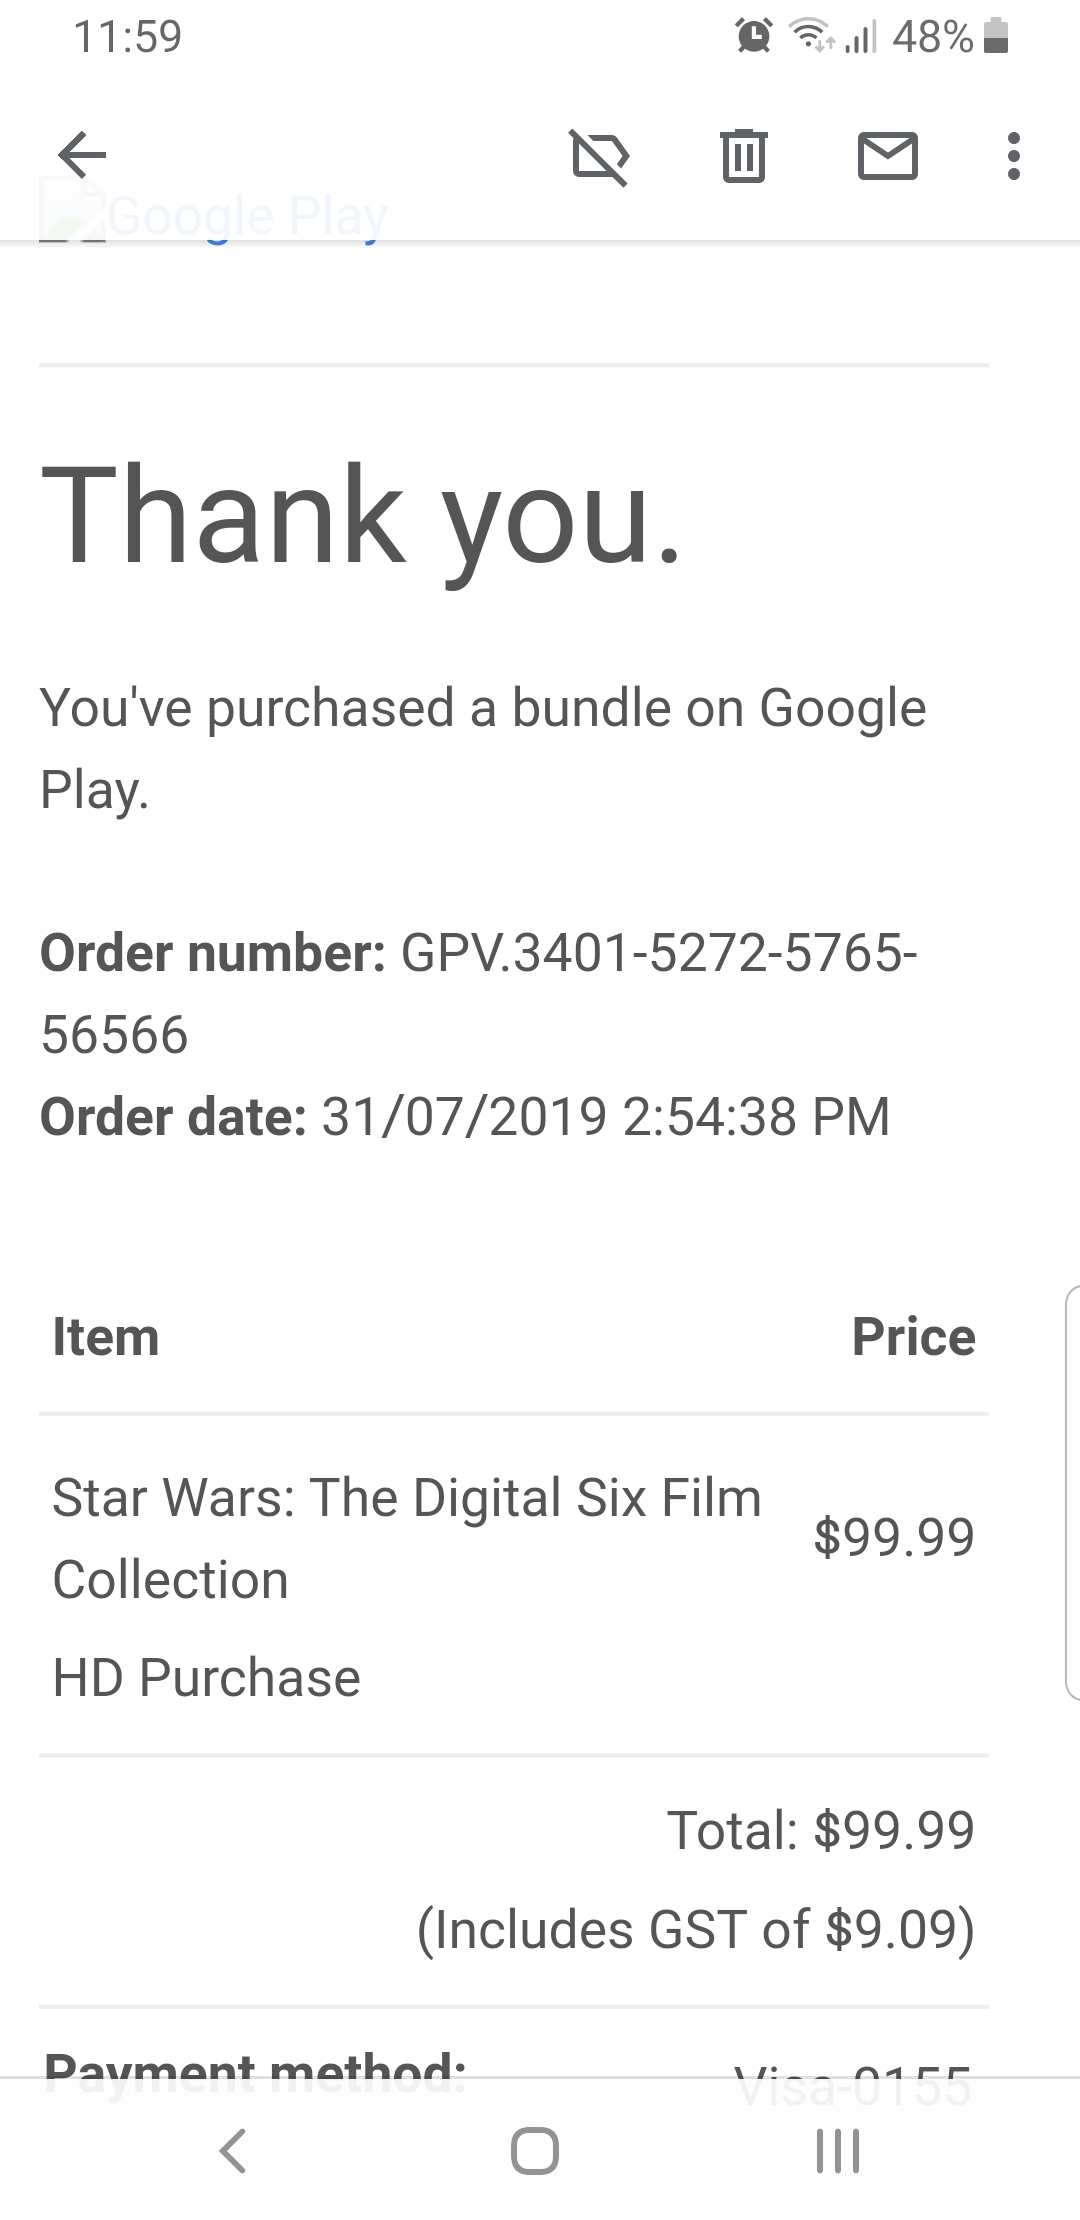 I Purchased The Star Wars 6 Movies For 99 And Now 1 Movie Had Disappeared From Google Movies Google Play Community